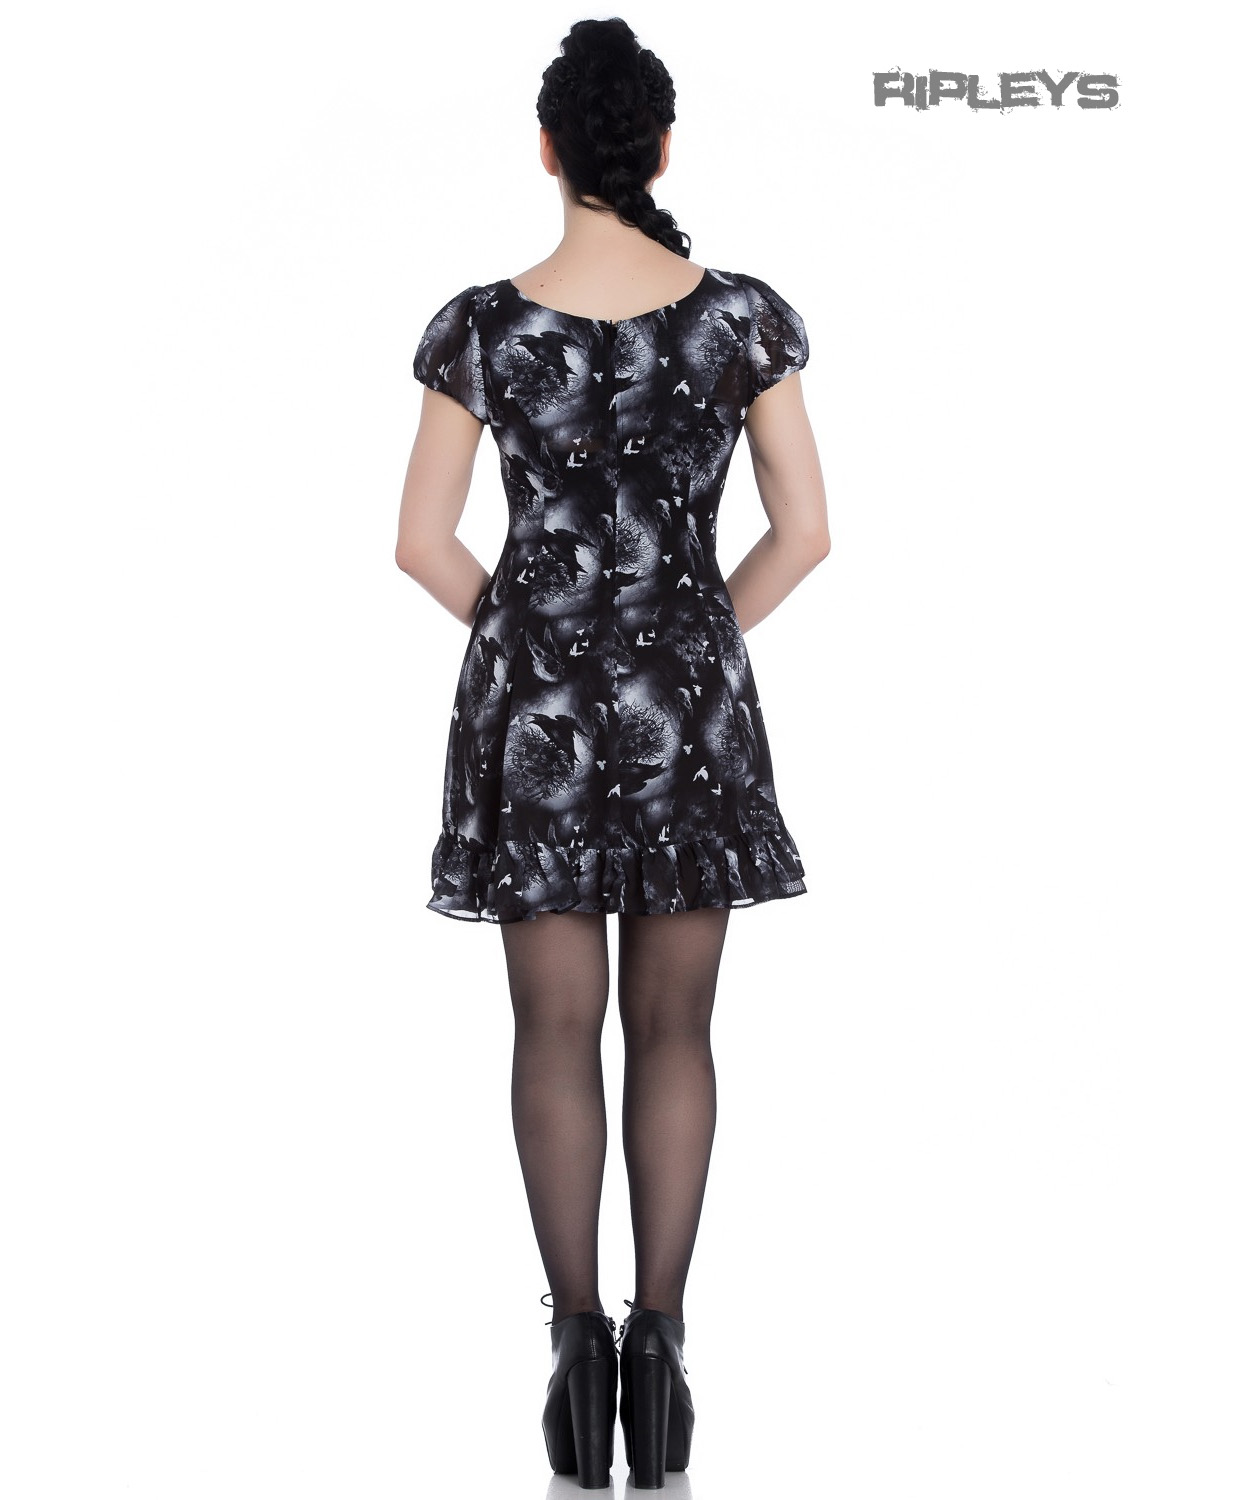 Hell-Bunny-Alchemy-Gothic-Black-Skater-Mini-Dress-ASH-Crows-Skulls-All-Sizes thumbnail 16